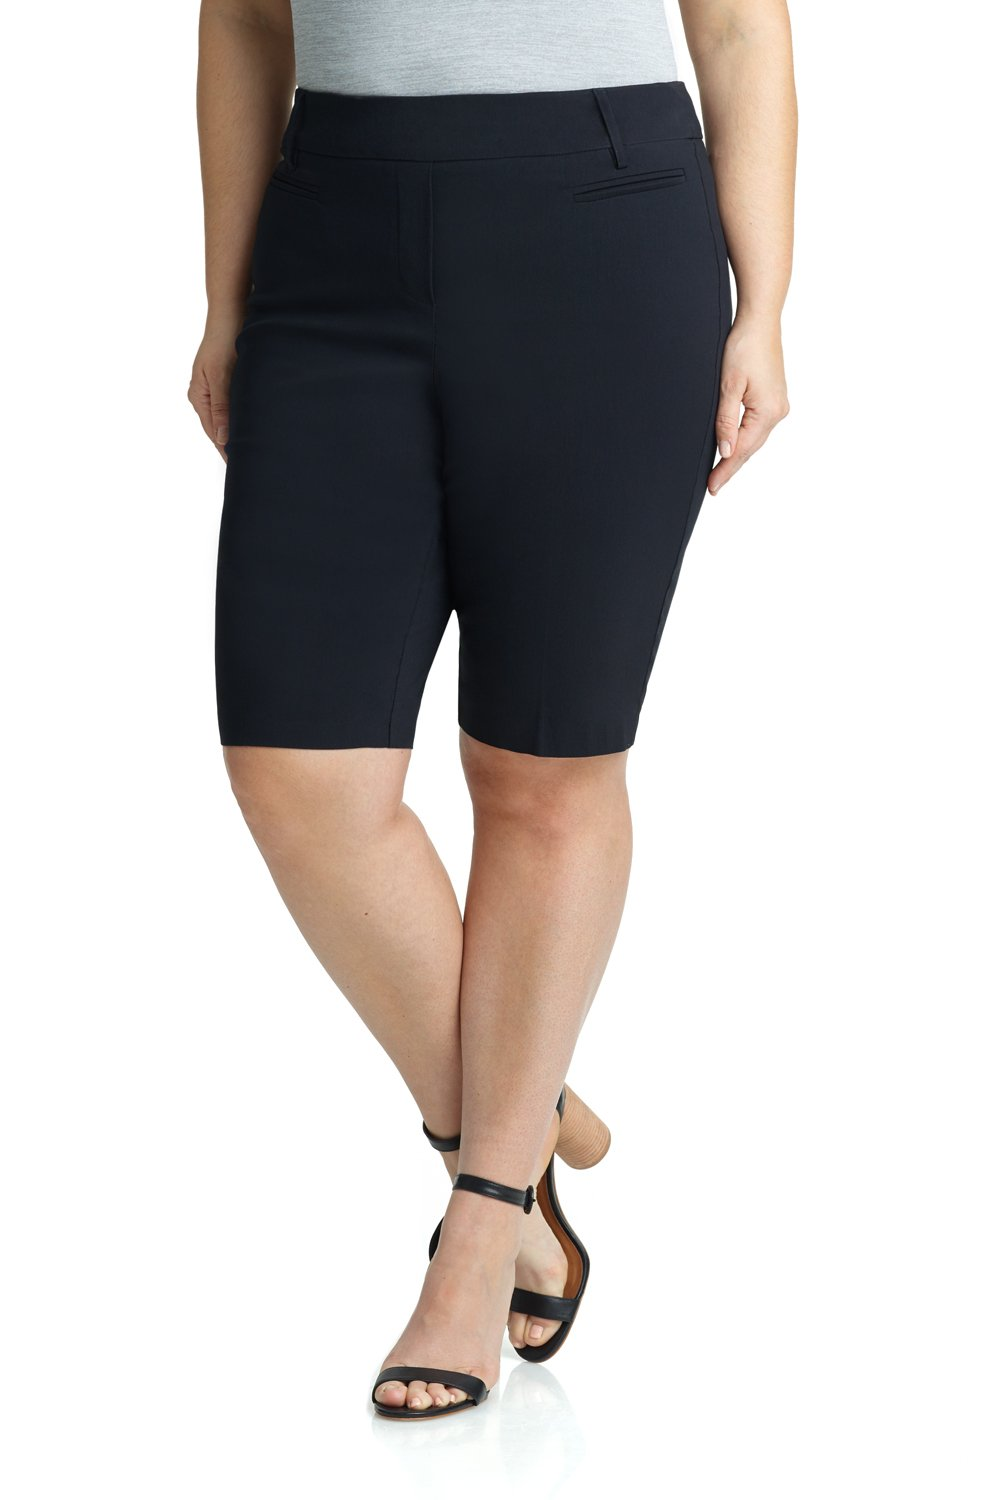 REKUCCI Women's Ease In To Comfort Curvy Fit Plus Size Modern City Short (14W,Black)